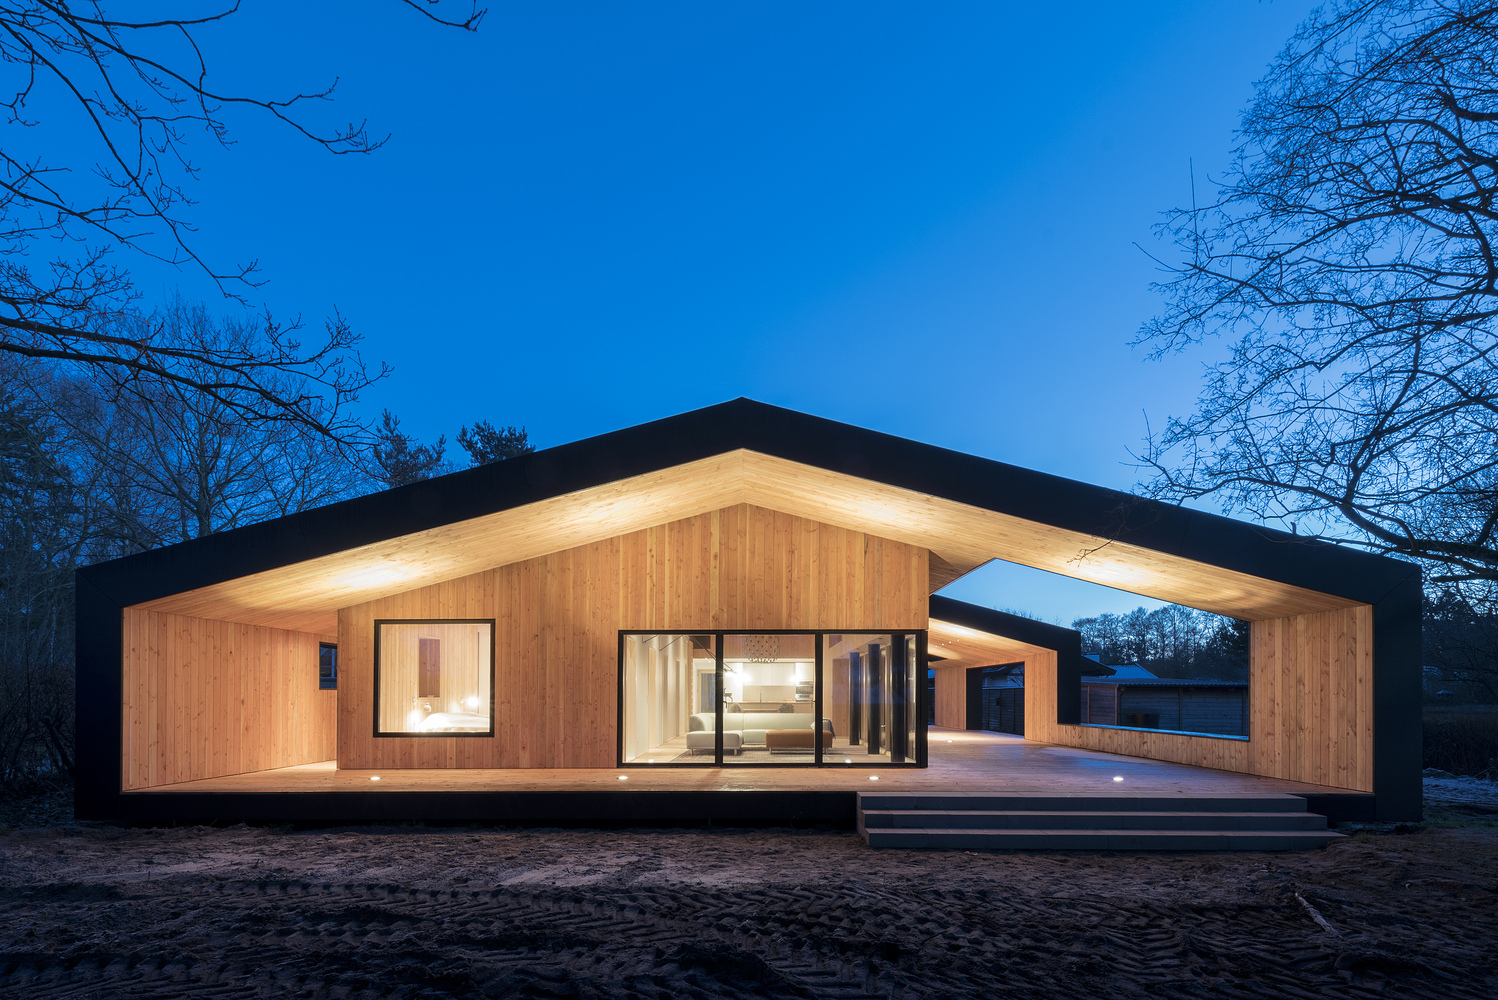 Summer House by CEBRA - Archiscene - Your Daily Architecture